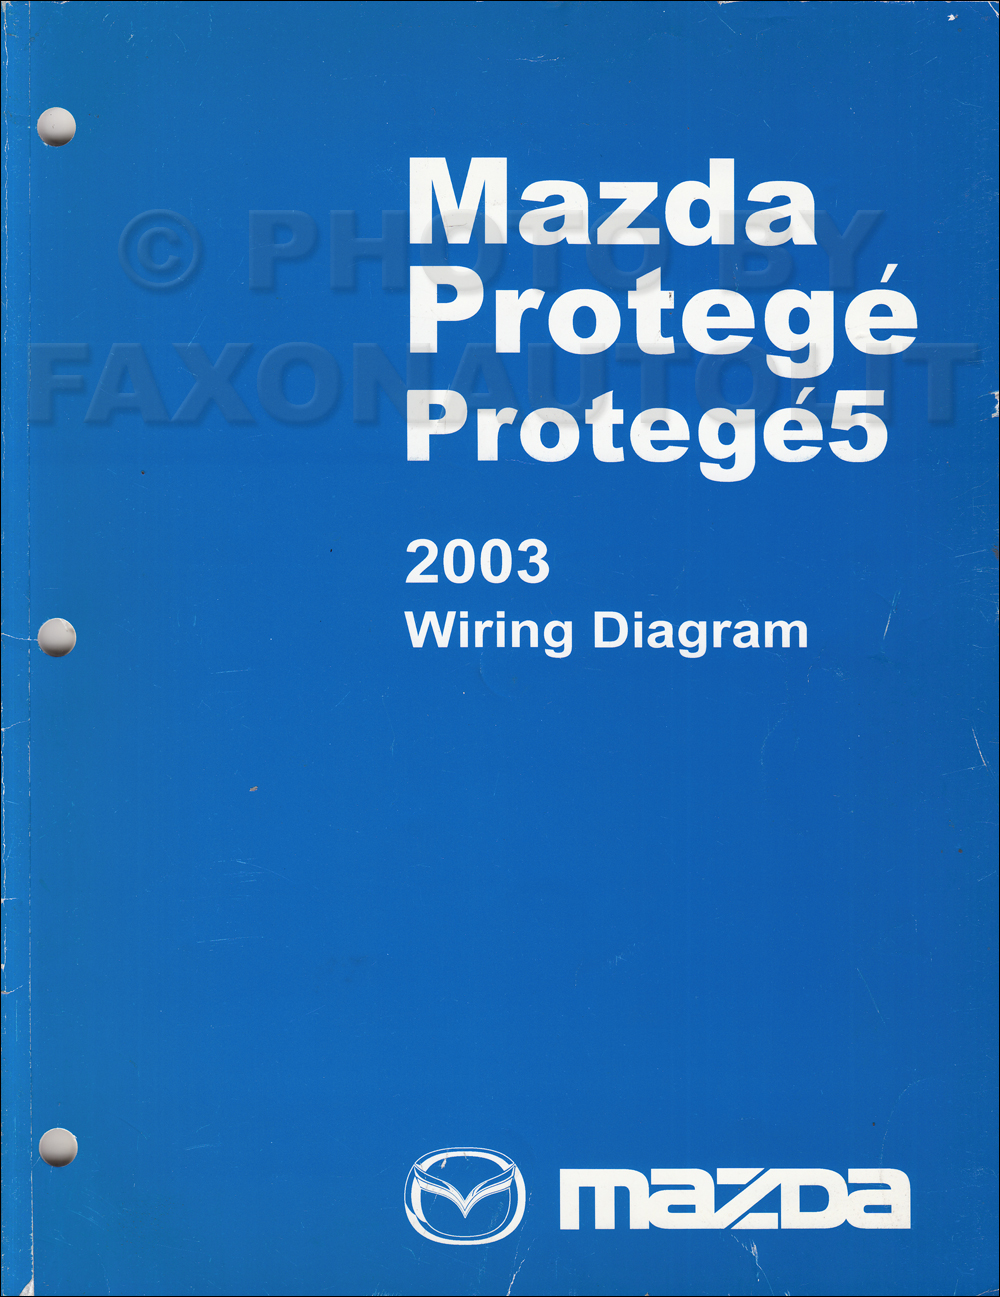 2003 mazda protege and protege5 wiring diagram manual original rh faxonautoliterature com 2002 mazda protege ignition wiring diagram 2002 mazda protege ignition wiring diagram